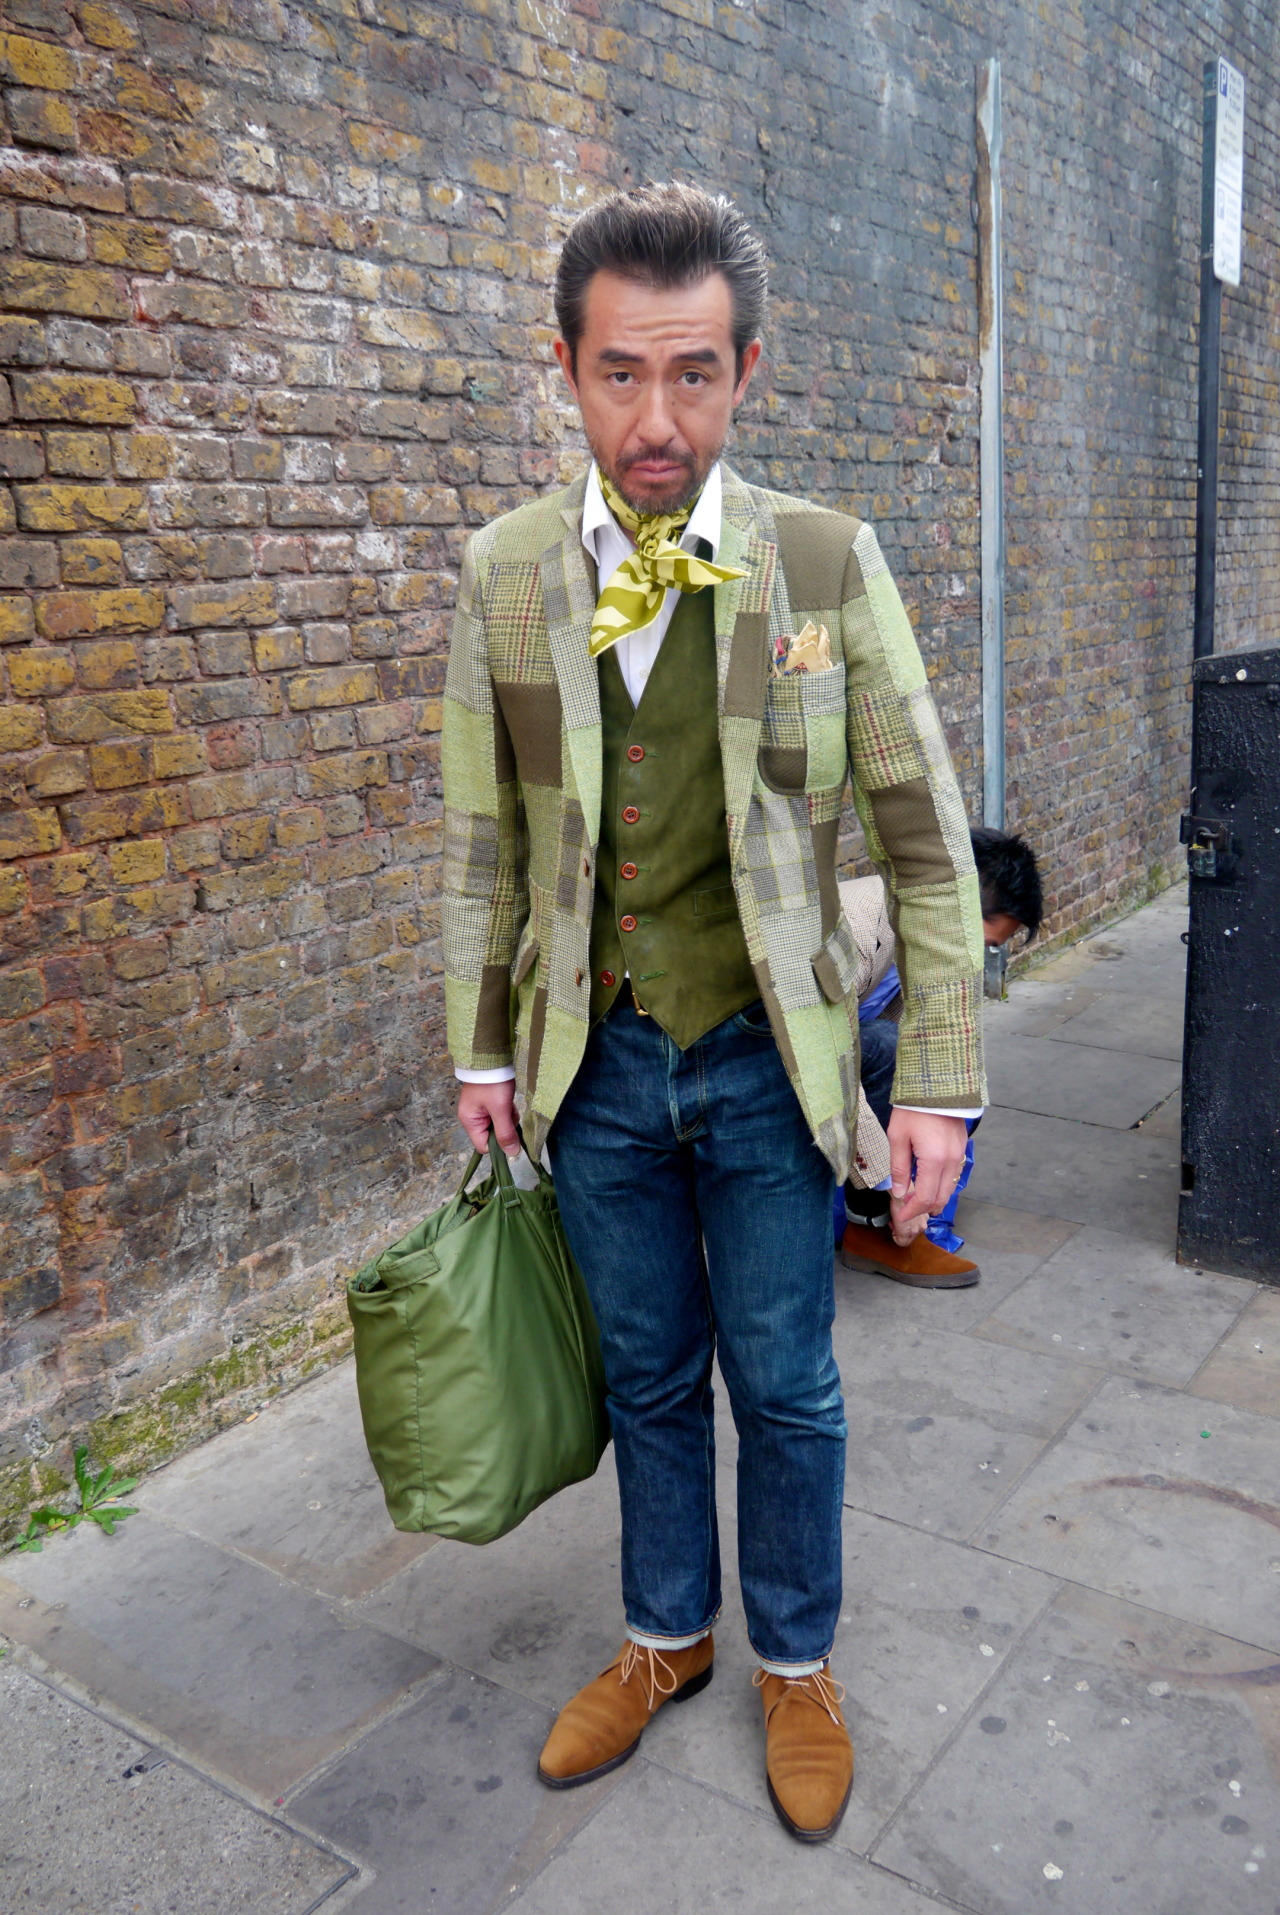 neoretrostreetstyle:   Khaki x blue, London! Beautiful patchwork jacket!